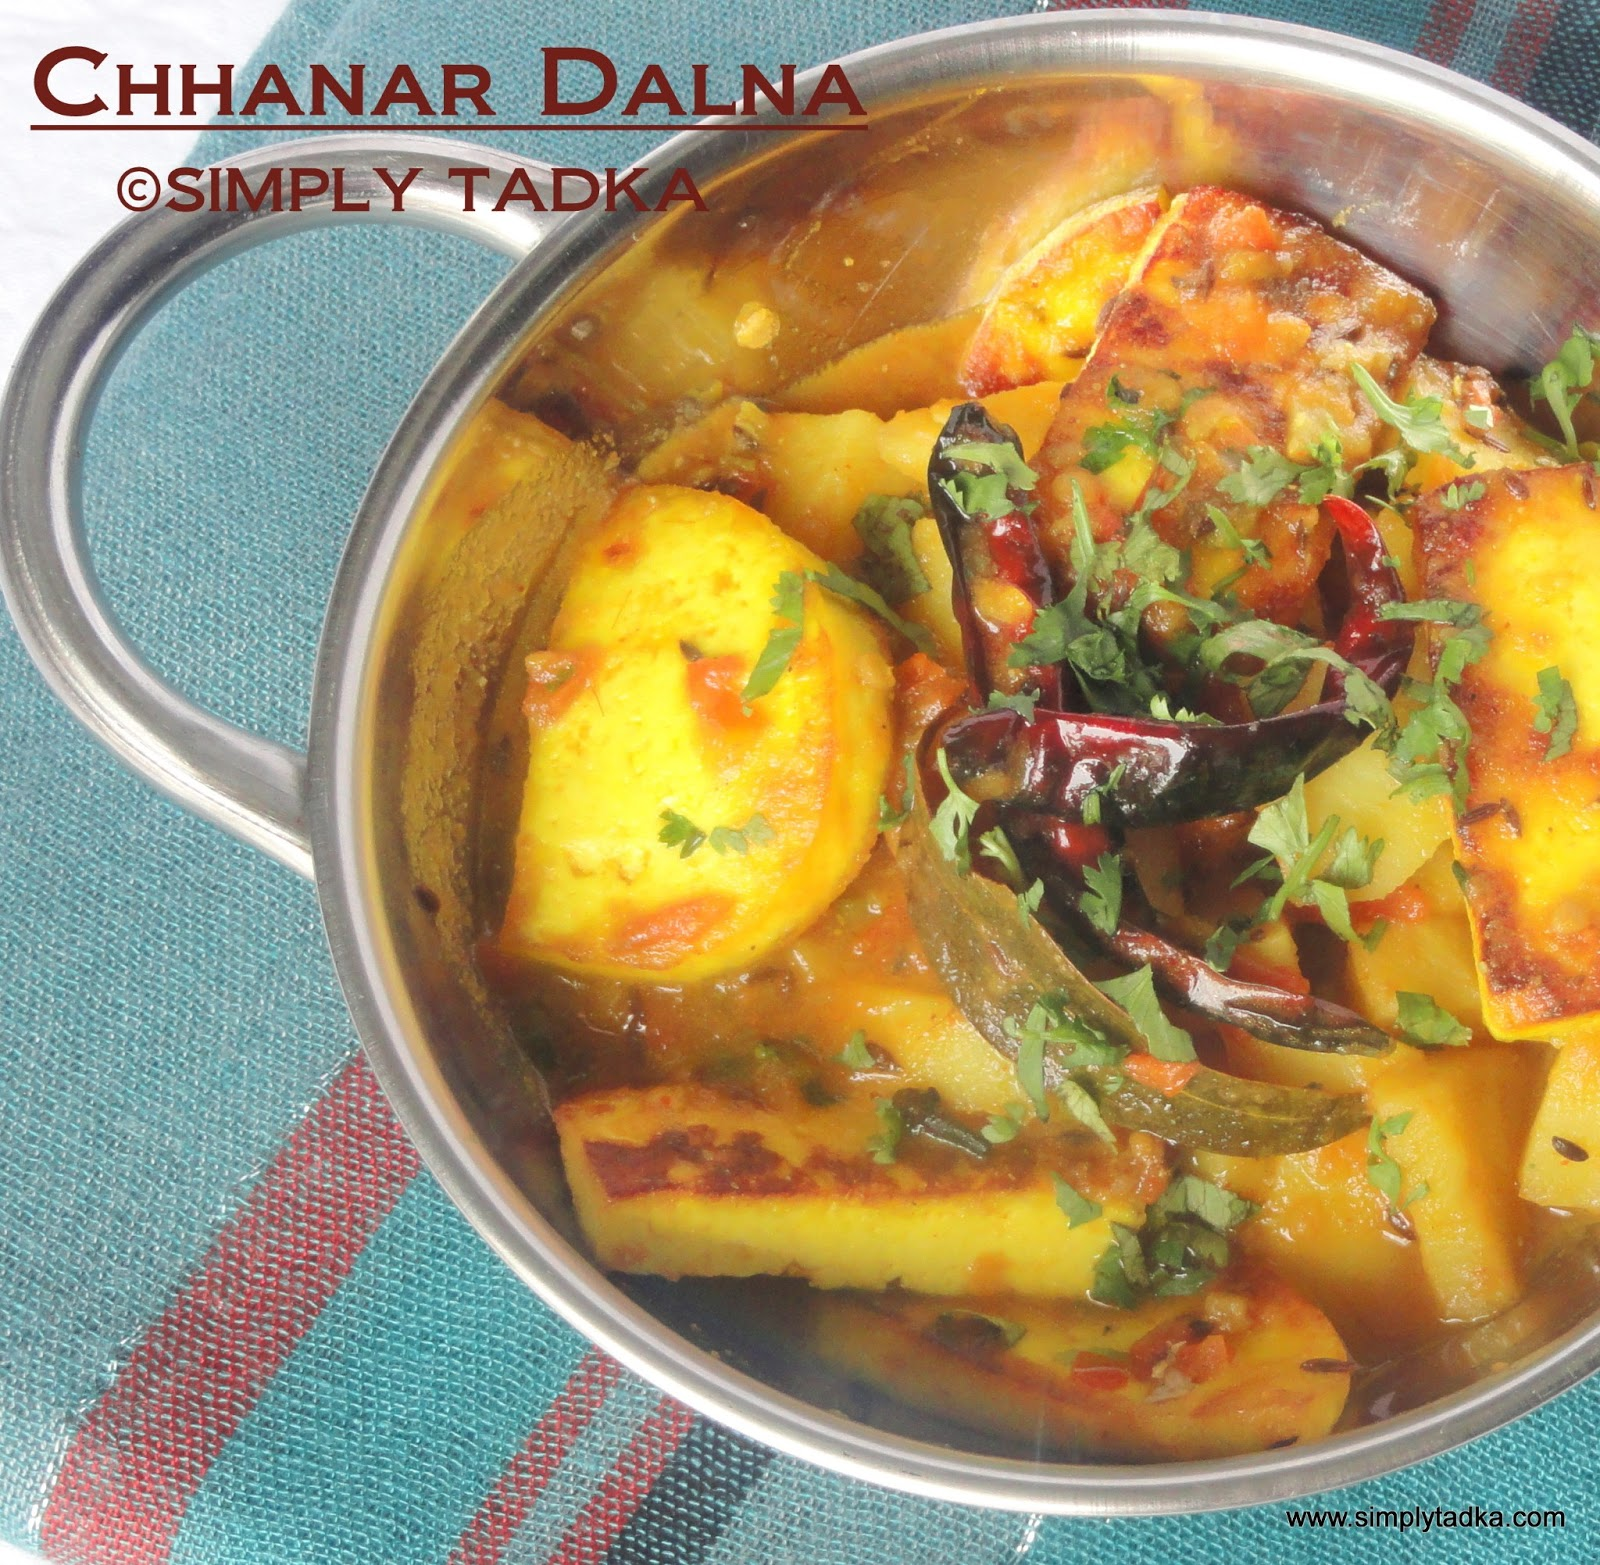 Review on Bong Mom's Cook Book & Chhanar Dalna By Sandeepa